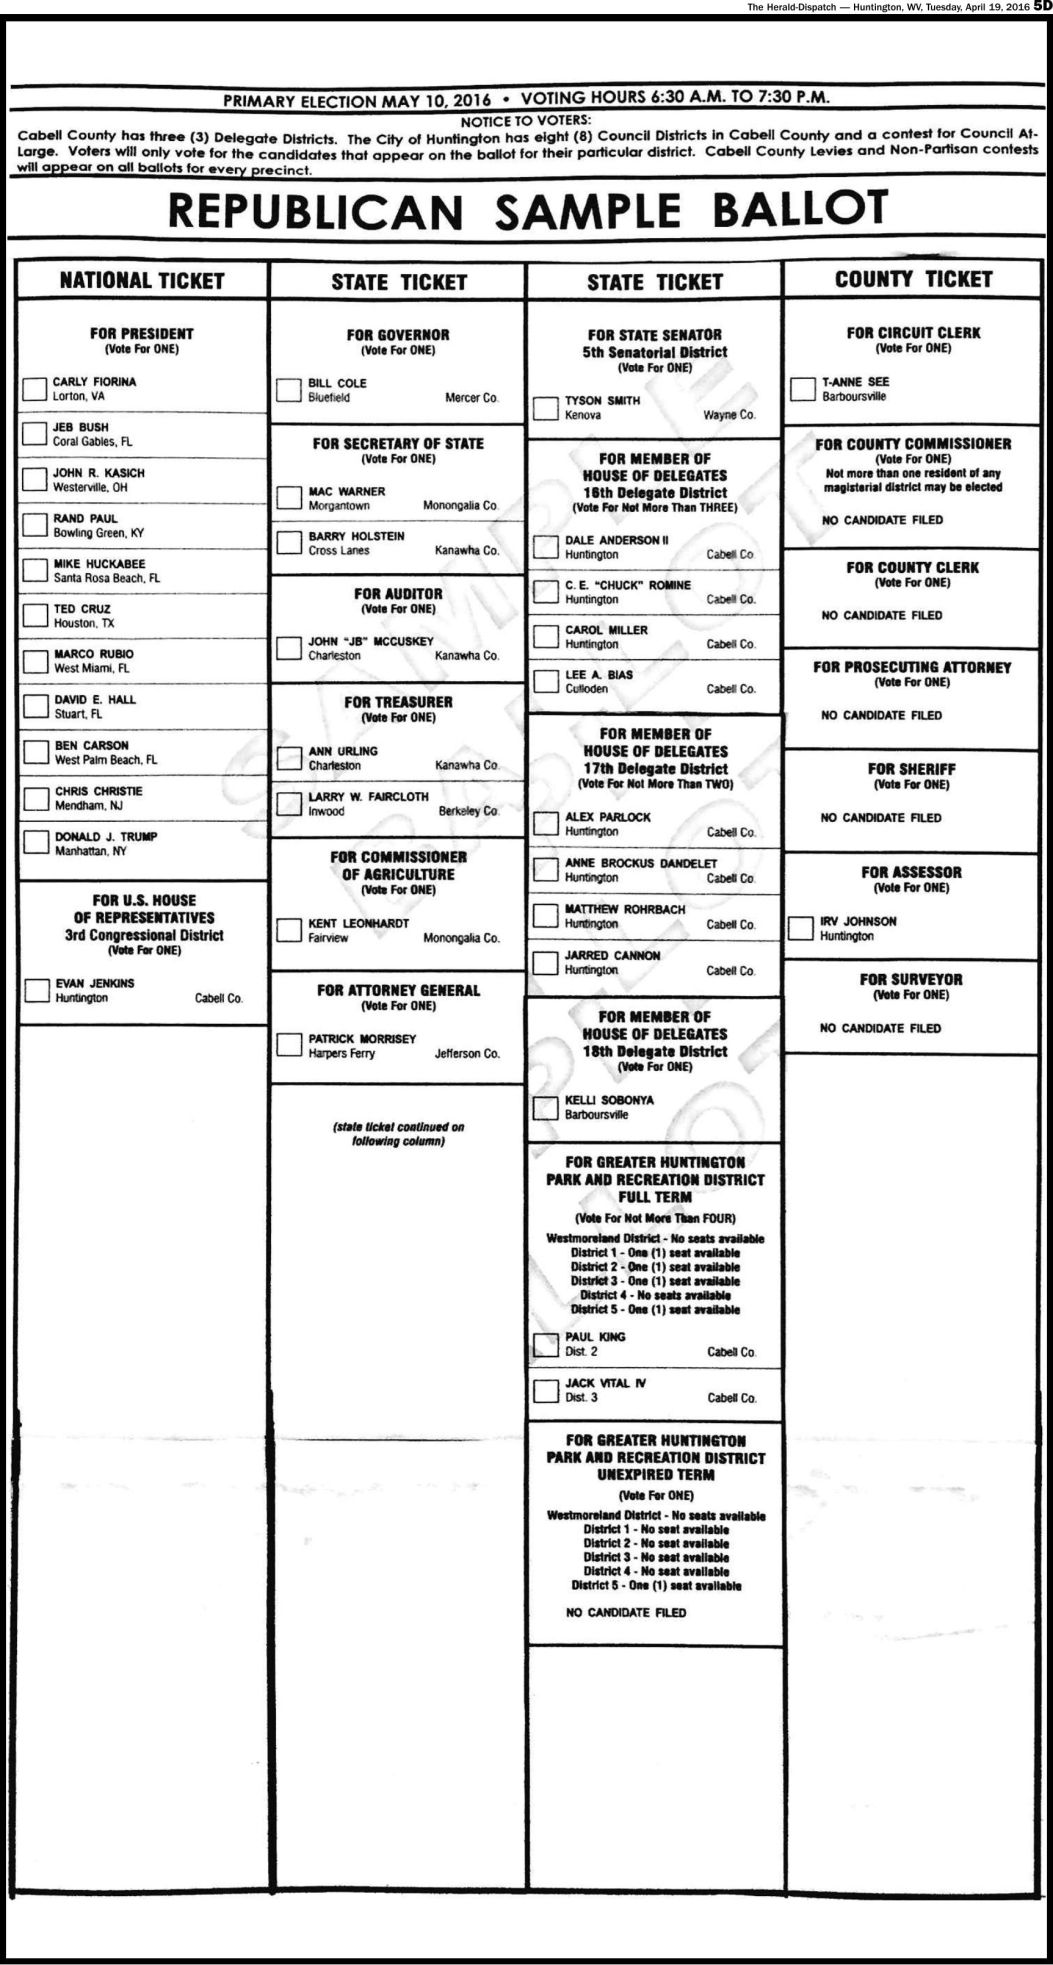 Lincoln county departments election information.